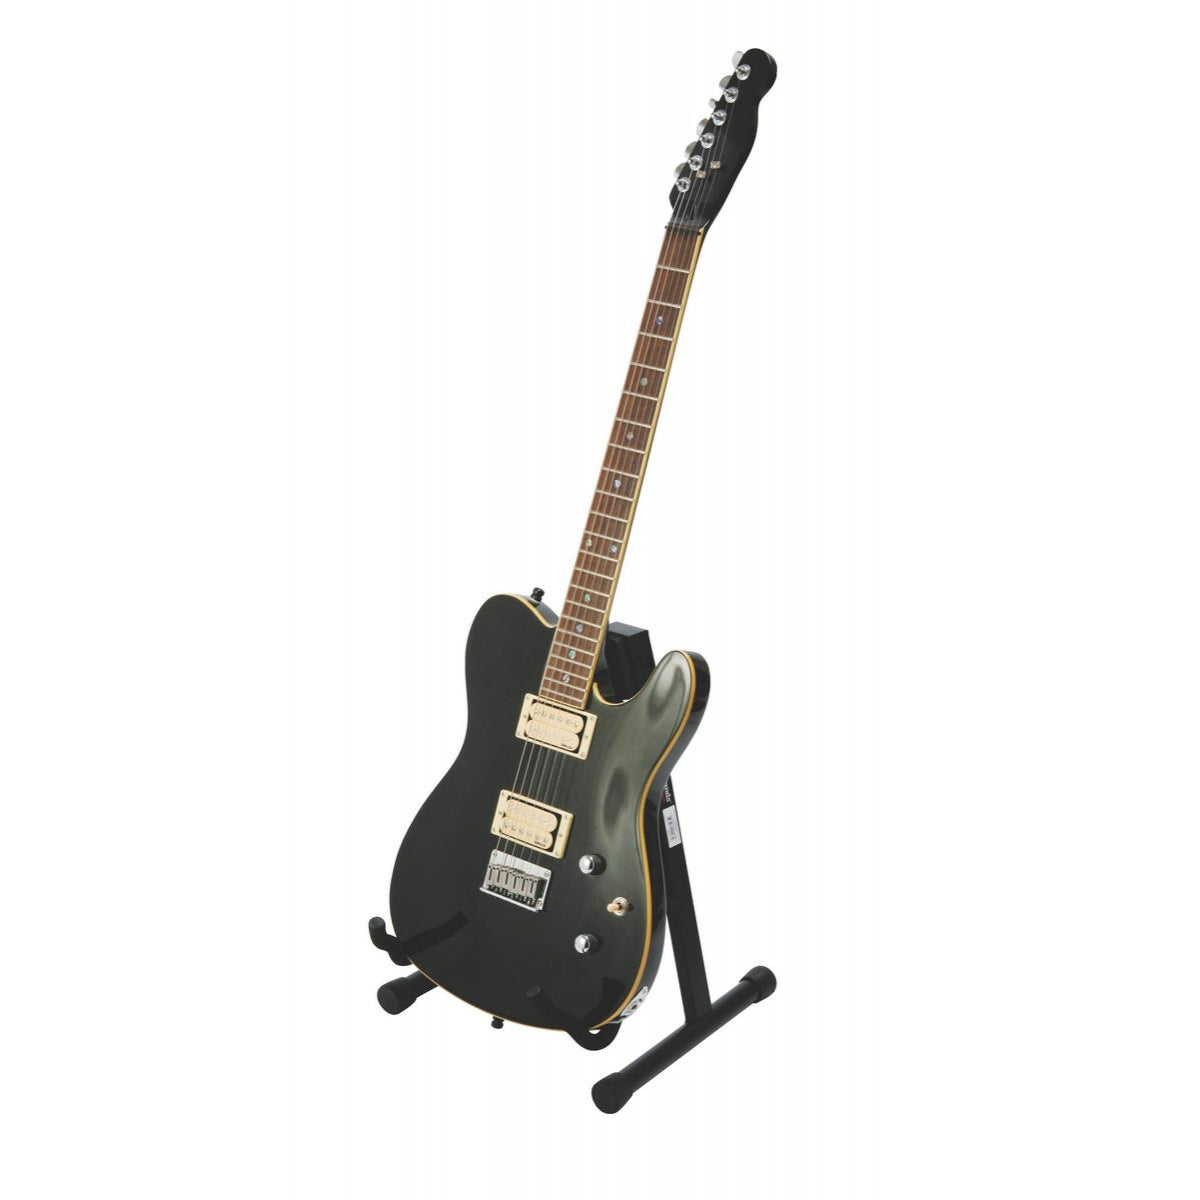 On-Stage Stands GS7362B Single A-Frame Guitar Stand